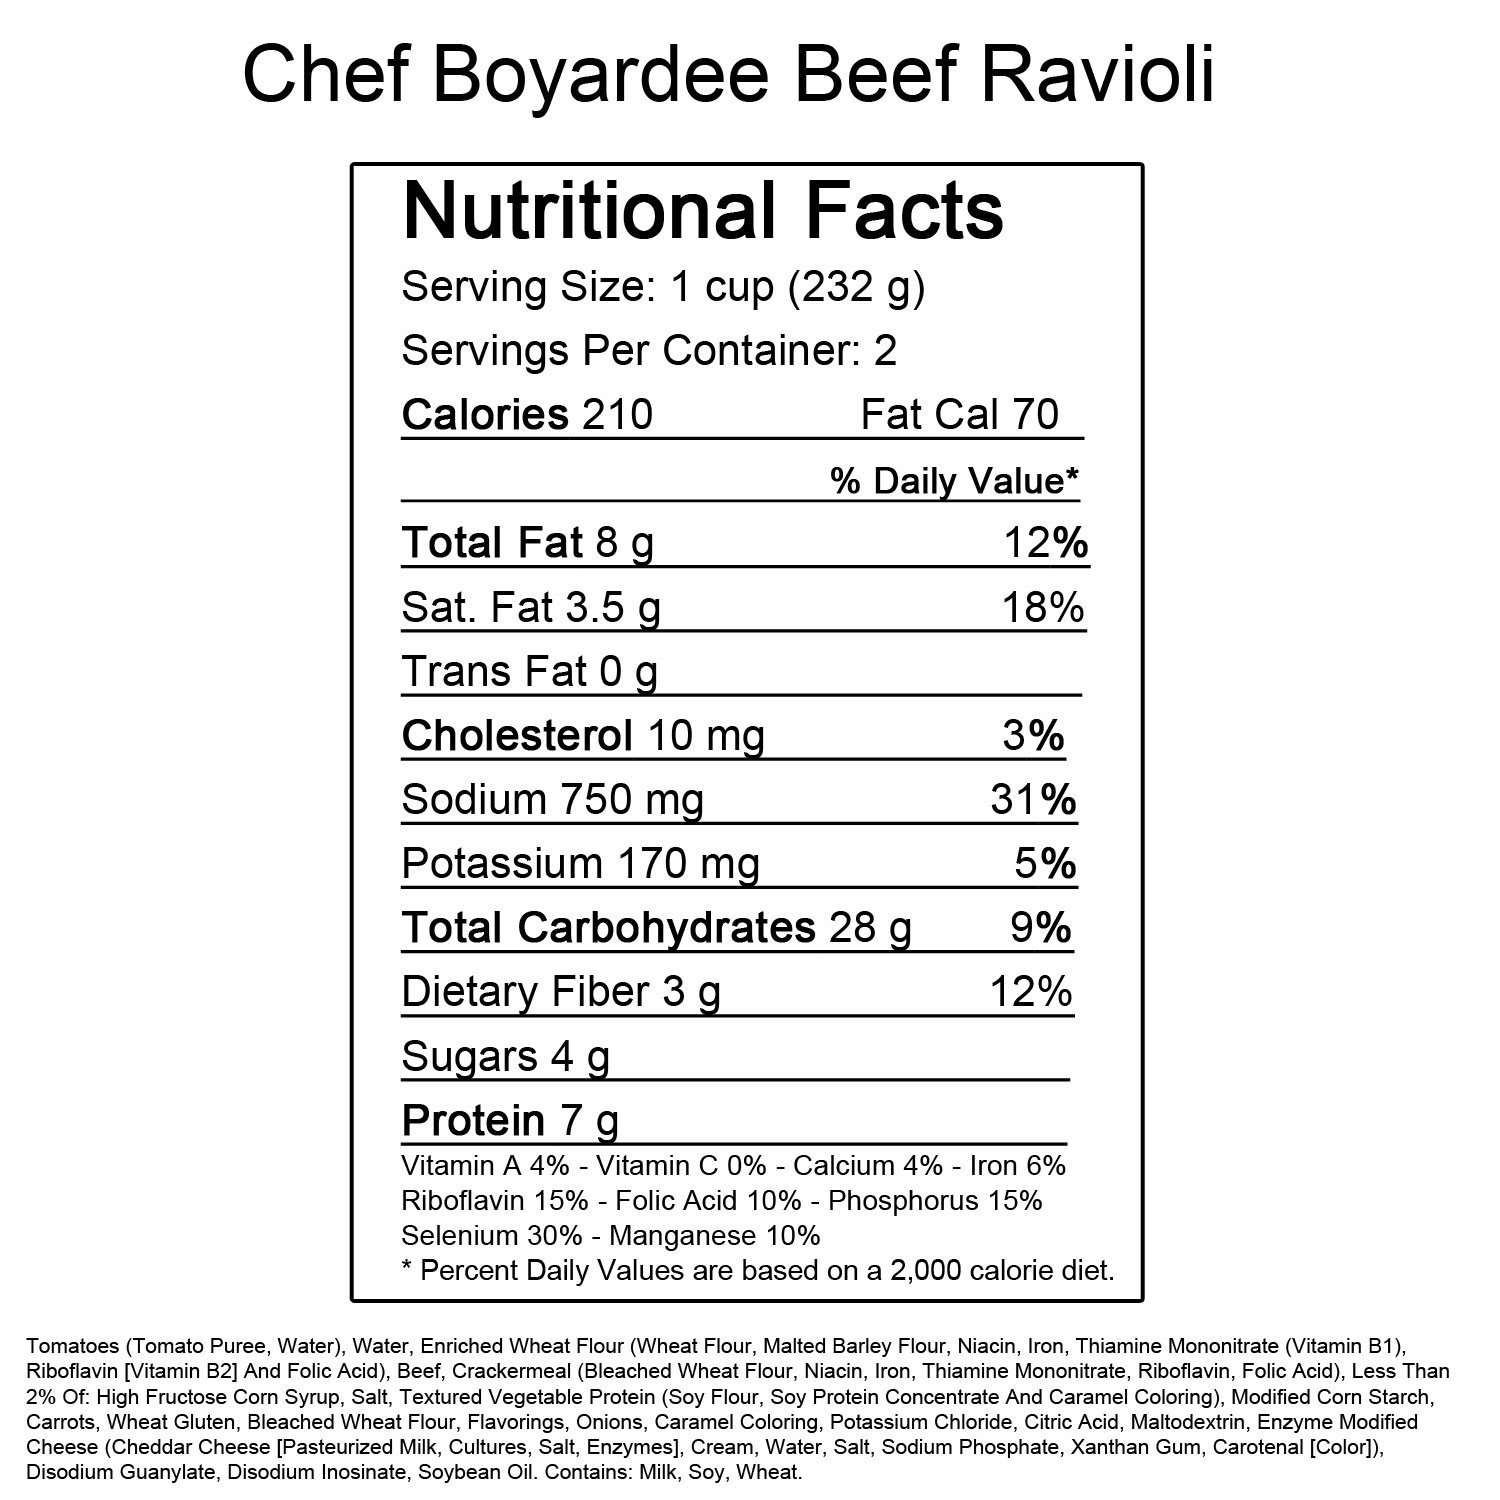 Chef Boyardee Big Micro Ravioli - 14.5 oz. Cup - 24 ct.: Amazon.com: Grocery & Gourmet Food